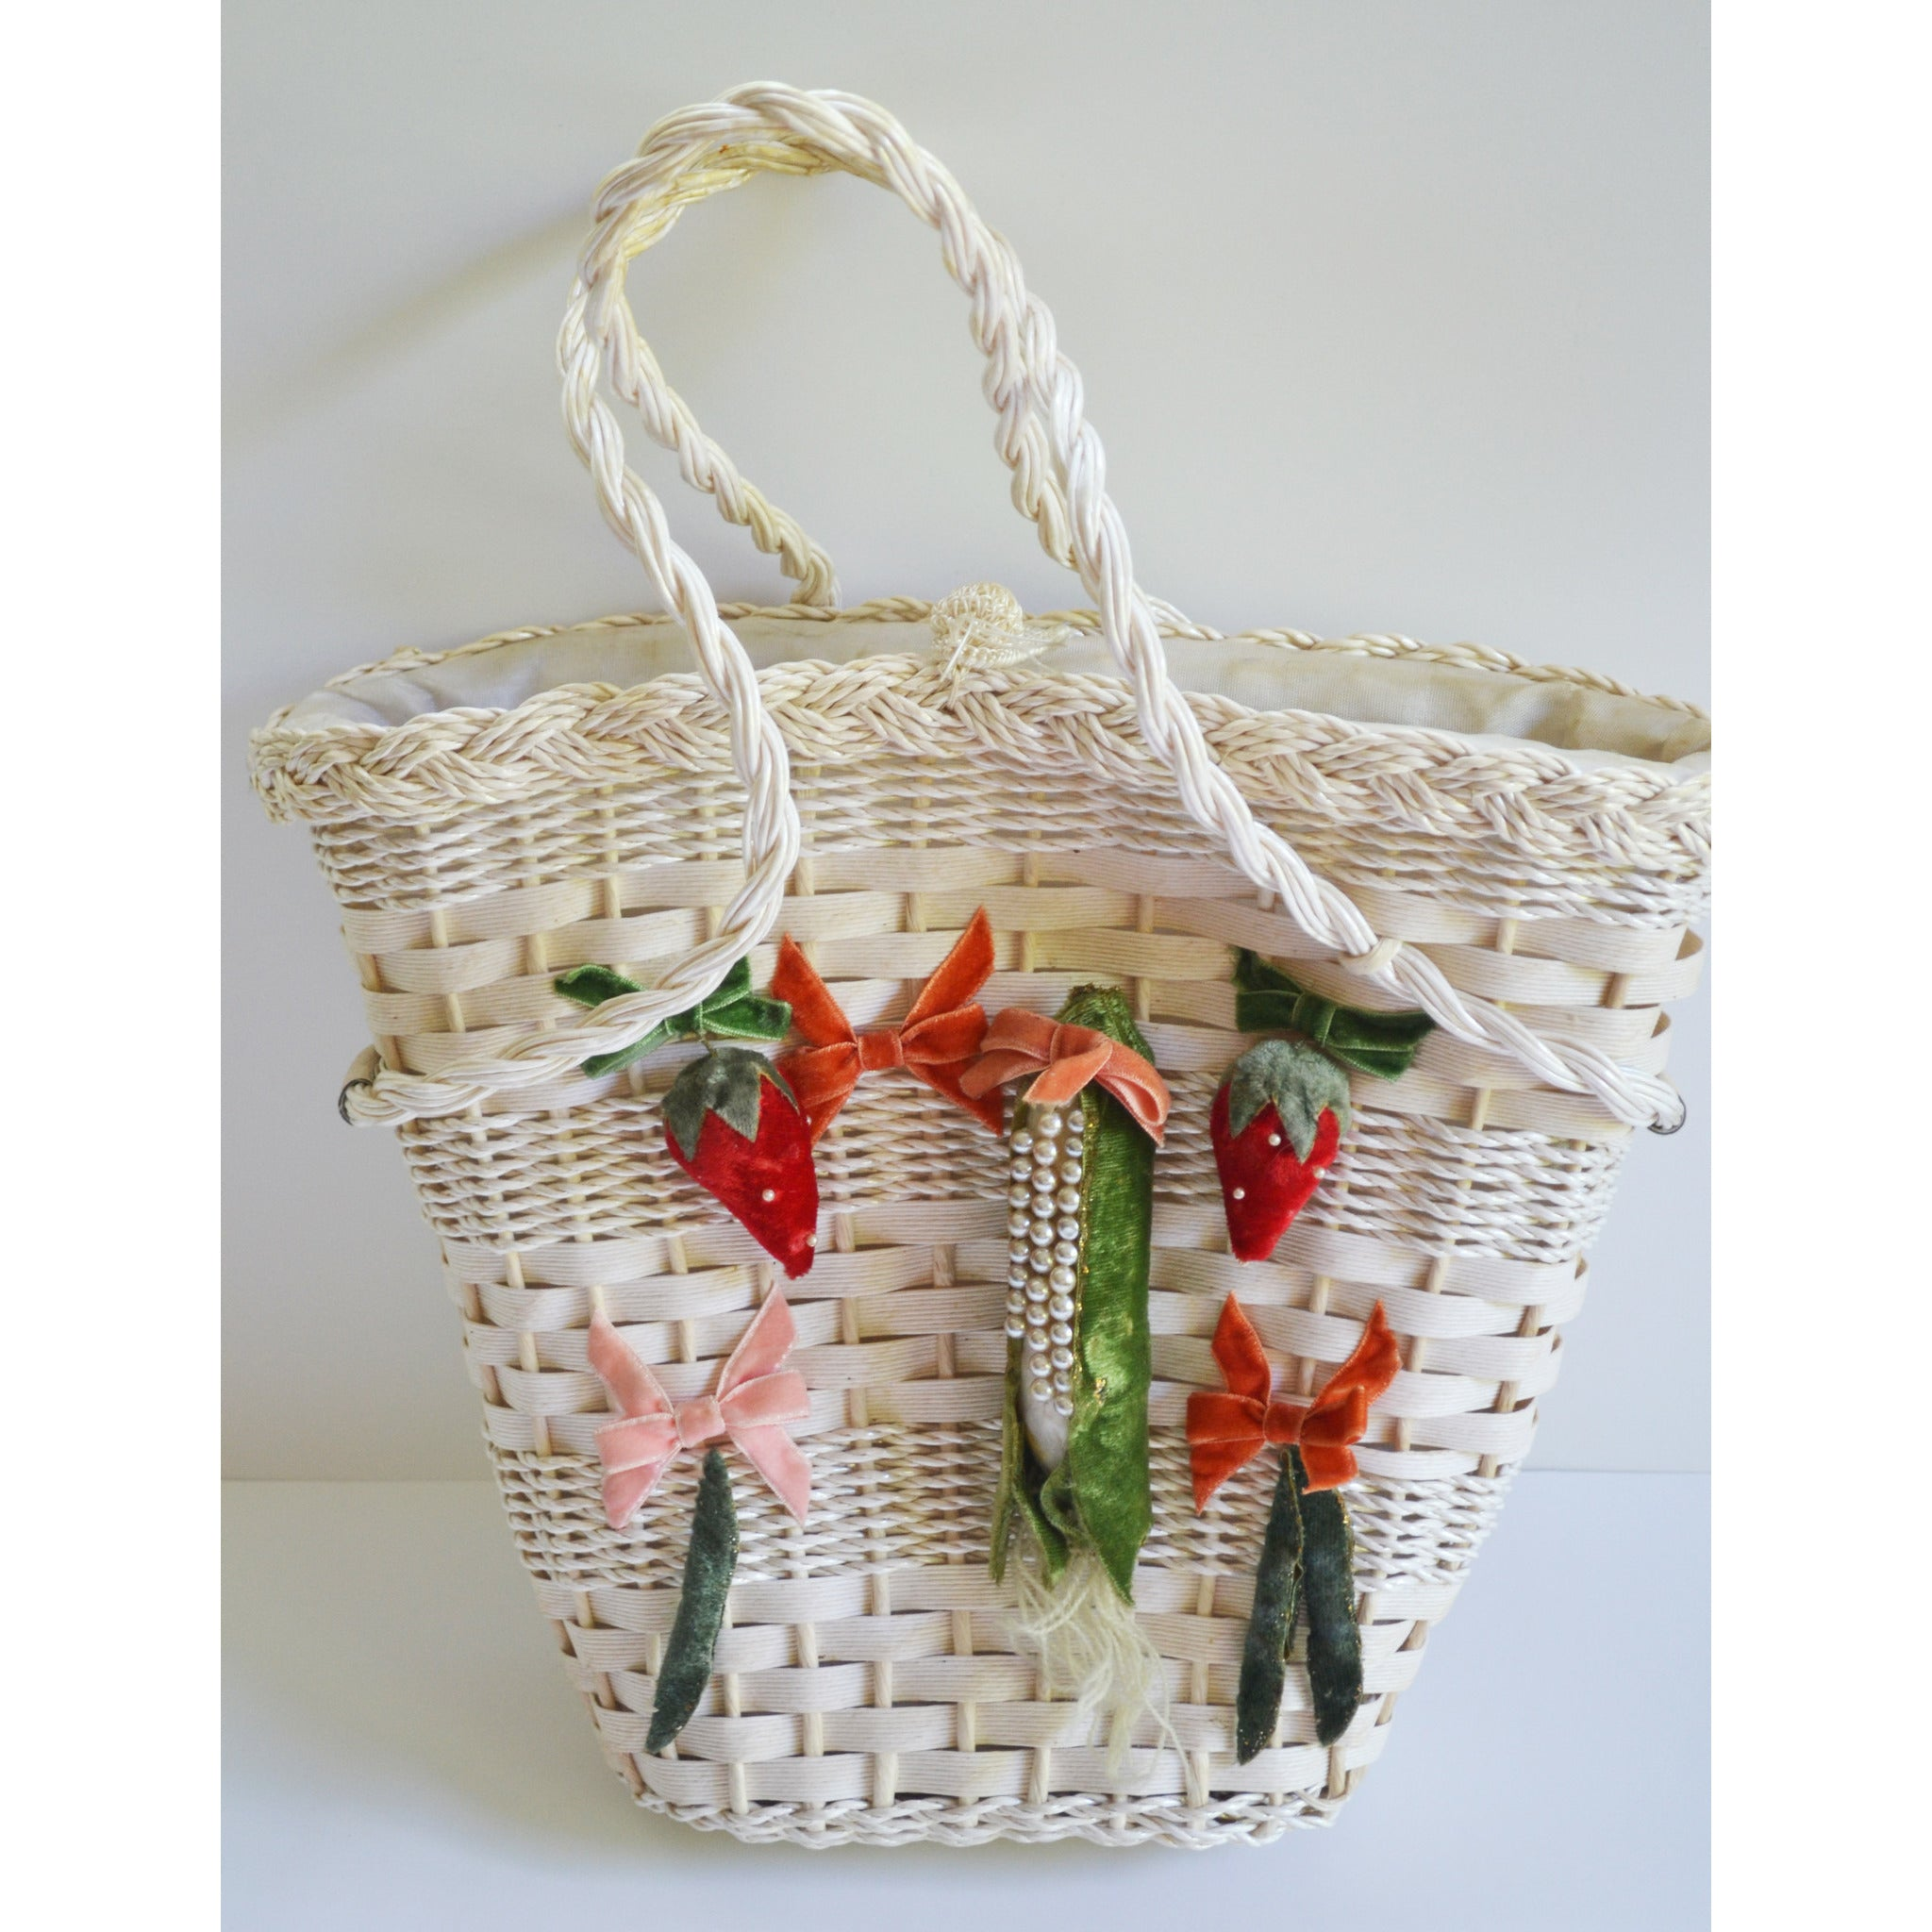 Vintage Vegetable & Fruit Wicker Purse